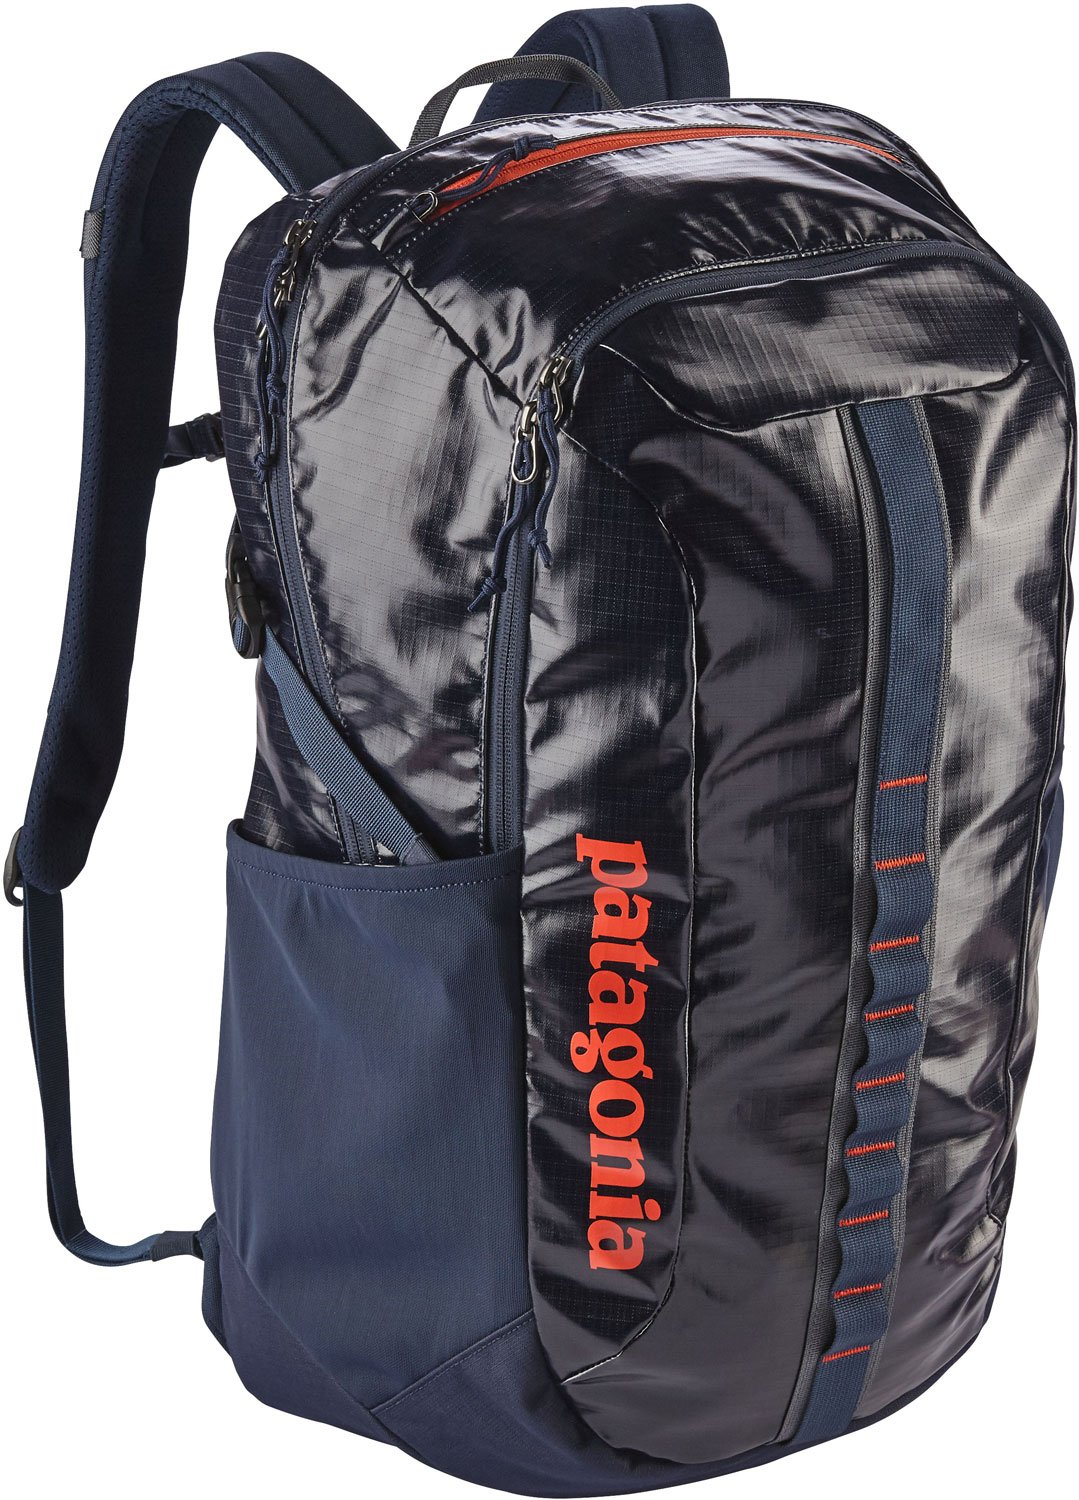 Patagonia Black Hole Pack 30L Navy Blue w/ Paintbrush Red by Patagonia